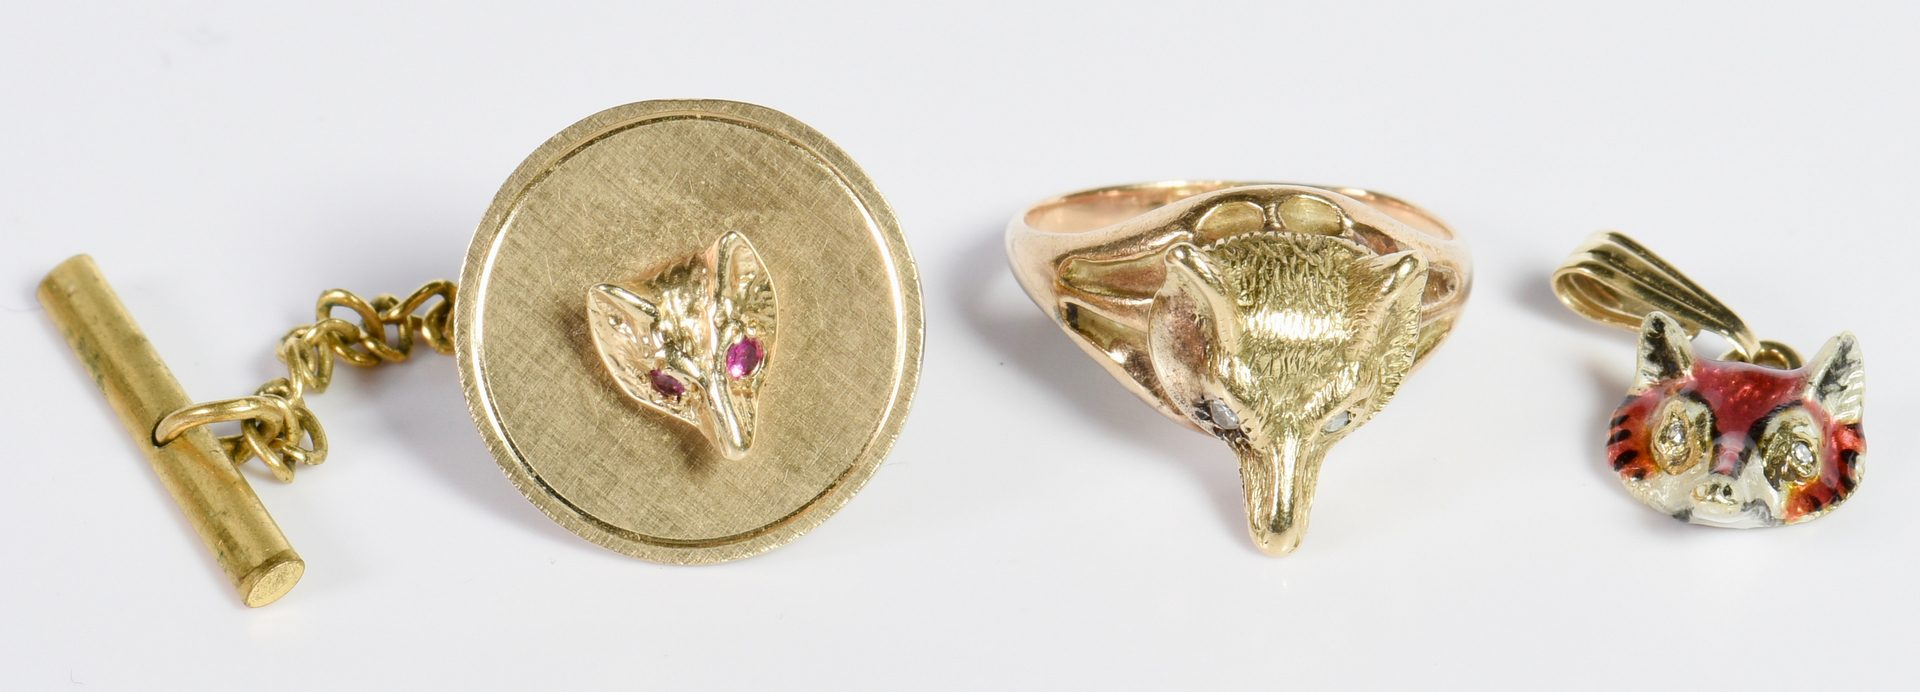 Lot 8: Group of Equestrian Gold Jewelry